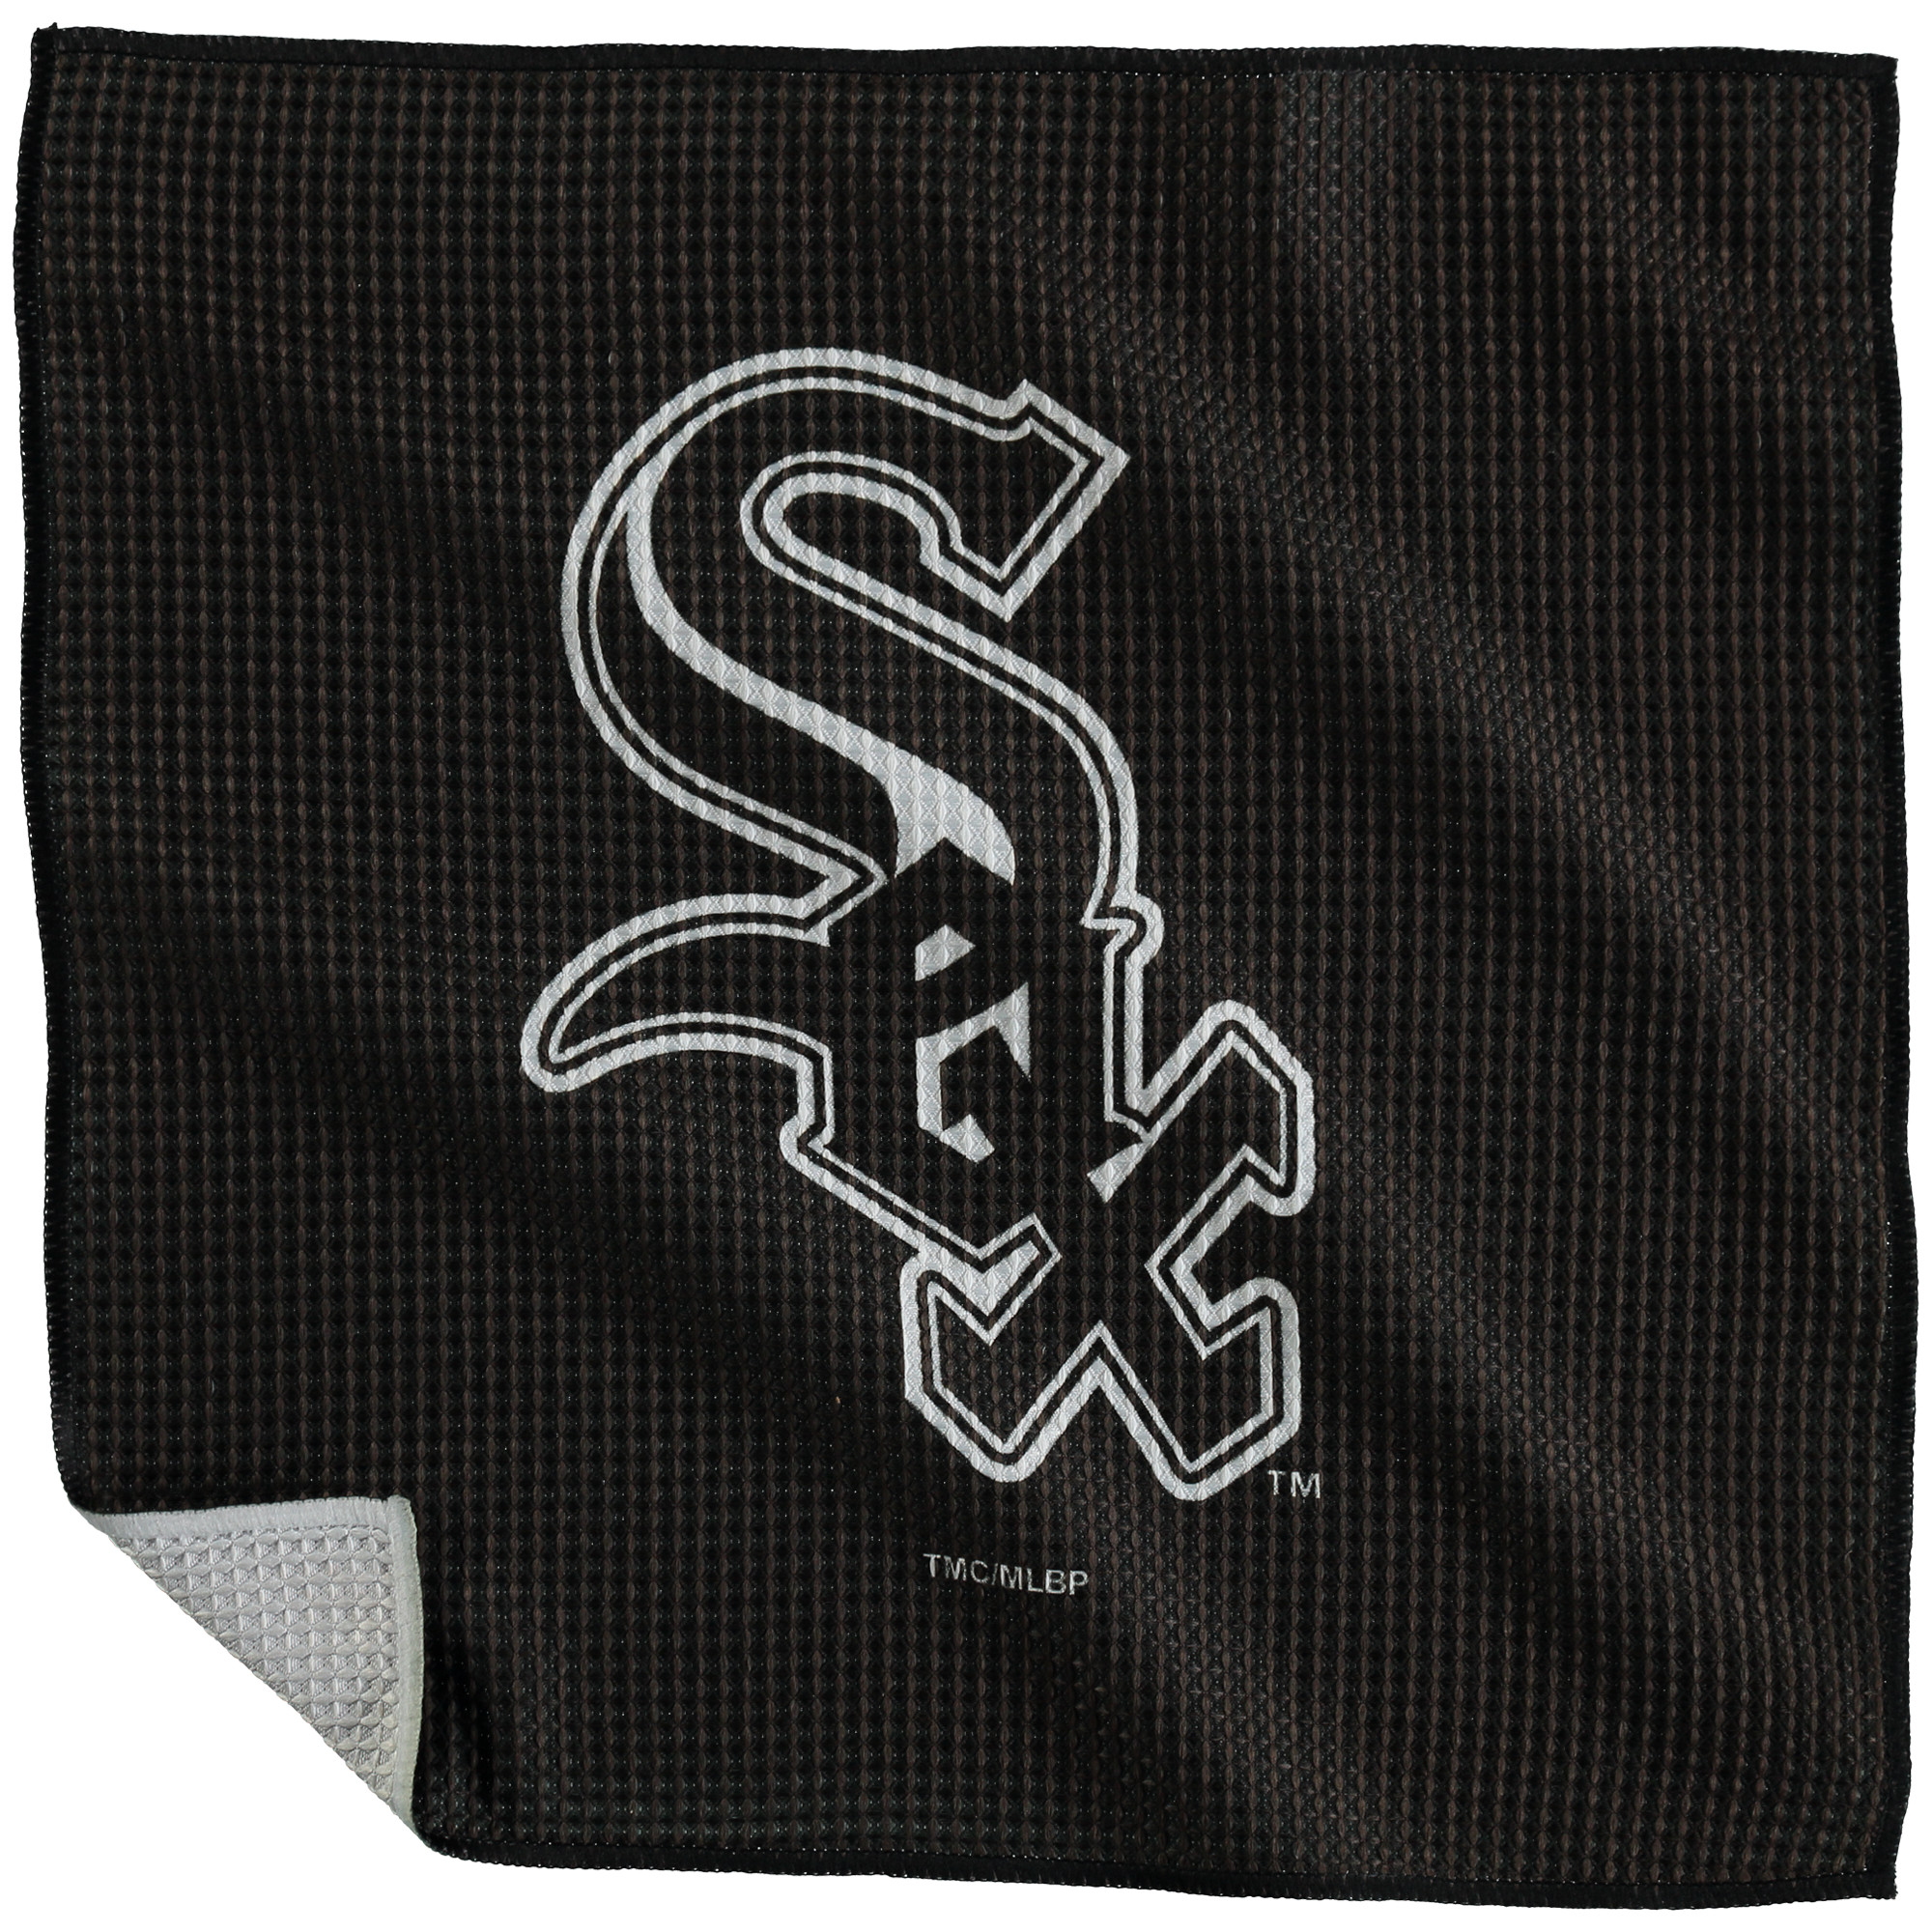 "Chicago White Sox 16"" x 16"" Microfiber Towel - No Size"